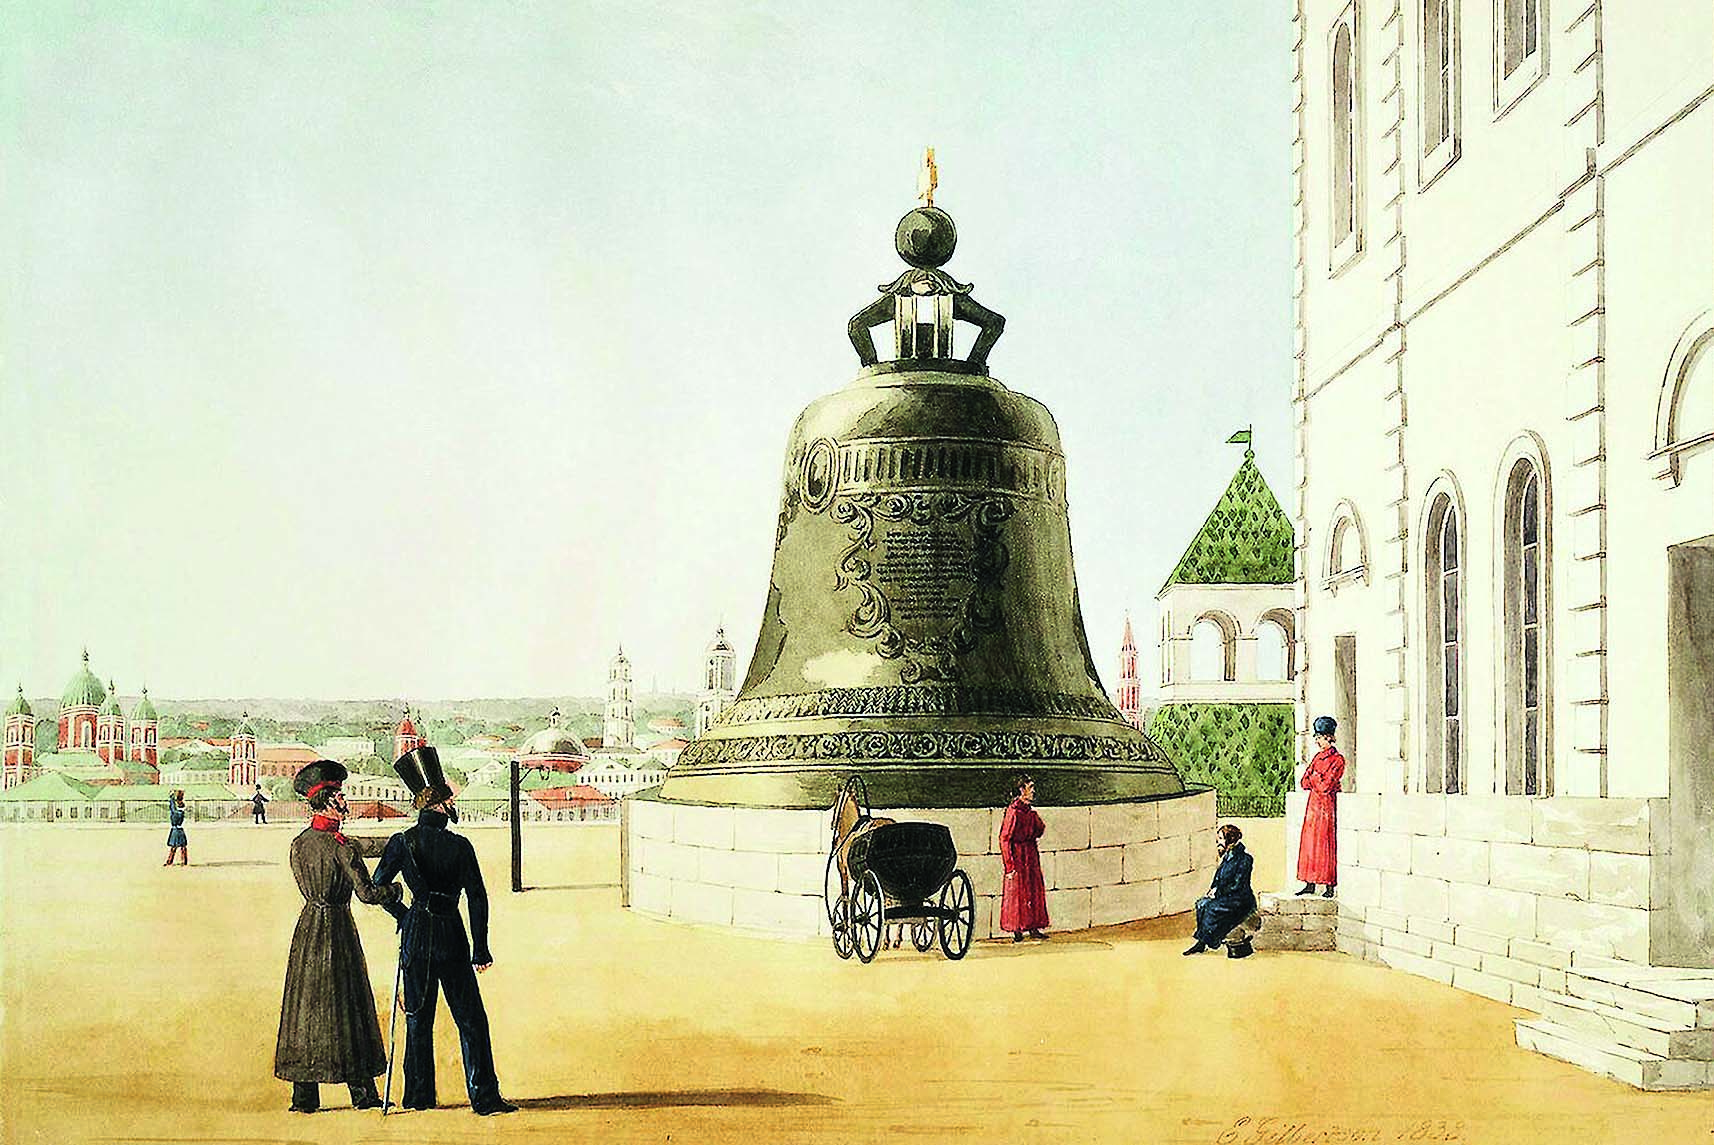 Gilbertson E. - Tsar Bell in the Moscow Kremlin